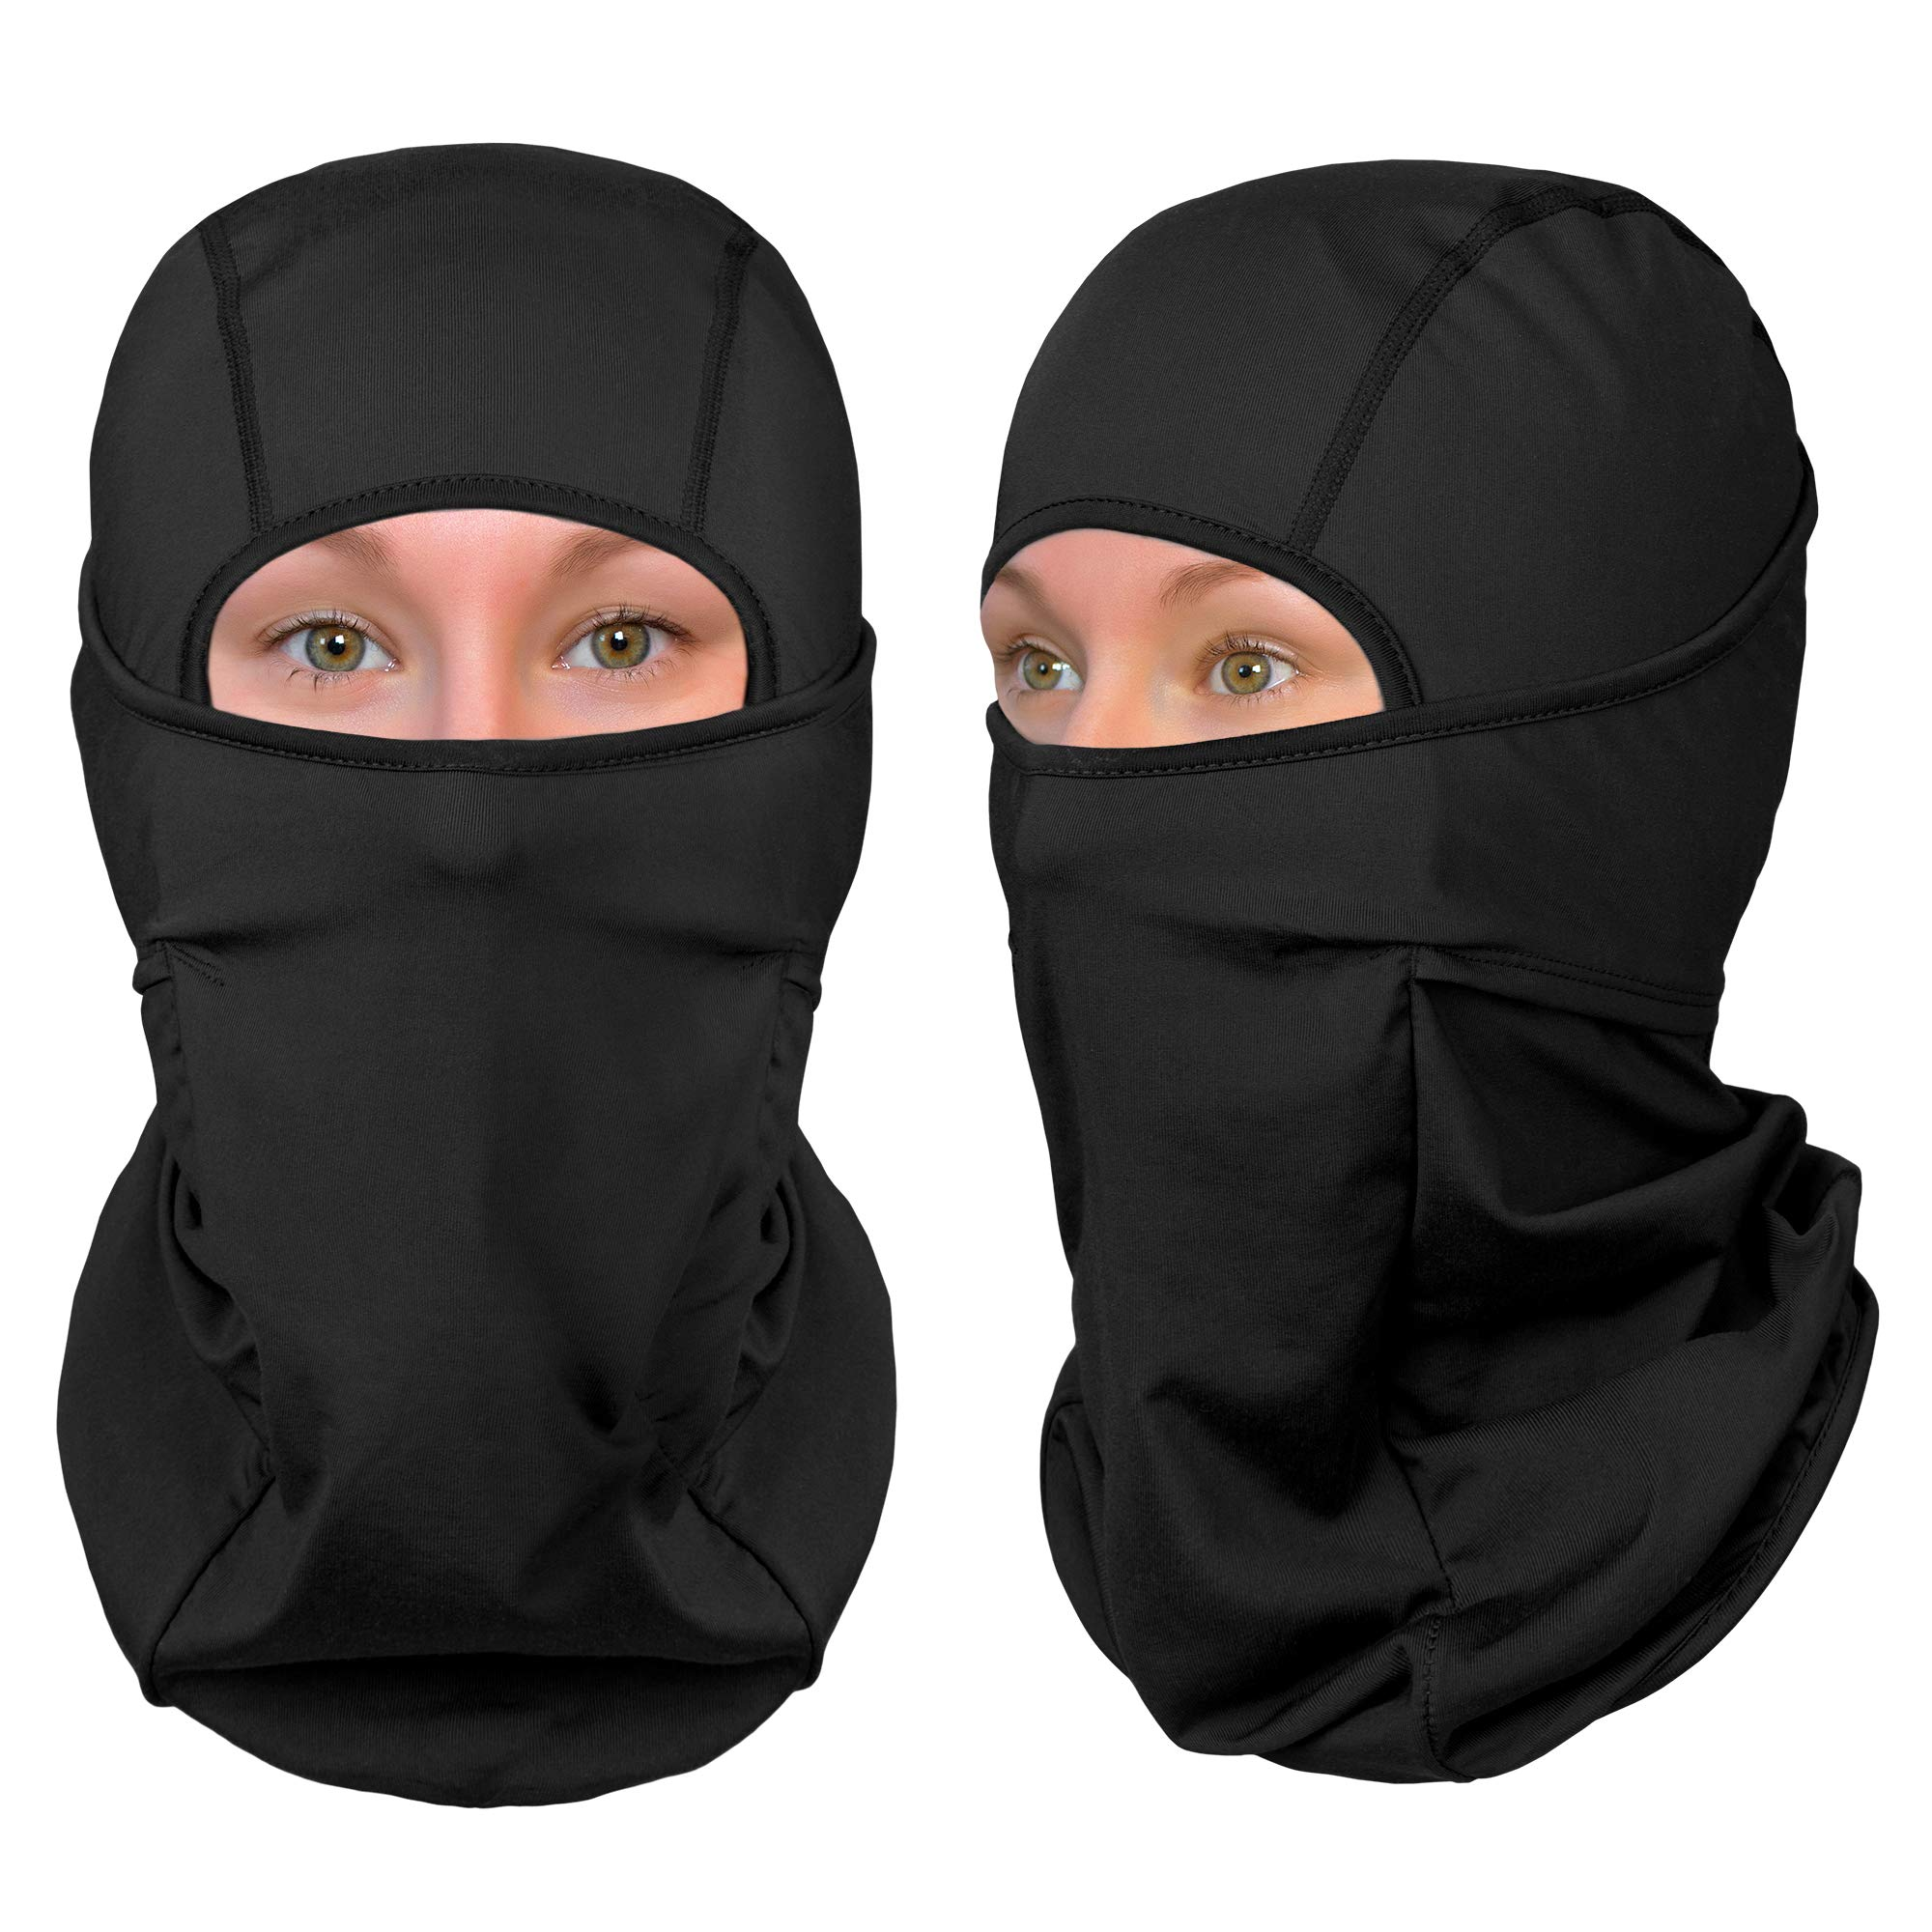 The Friendly Swede Balaclava Face Mask - Ski and Winter Sports Headwear 52bf4b033